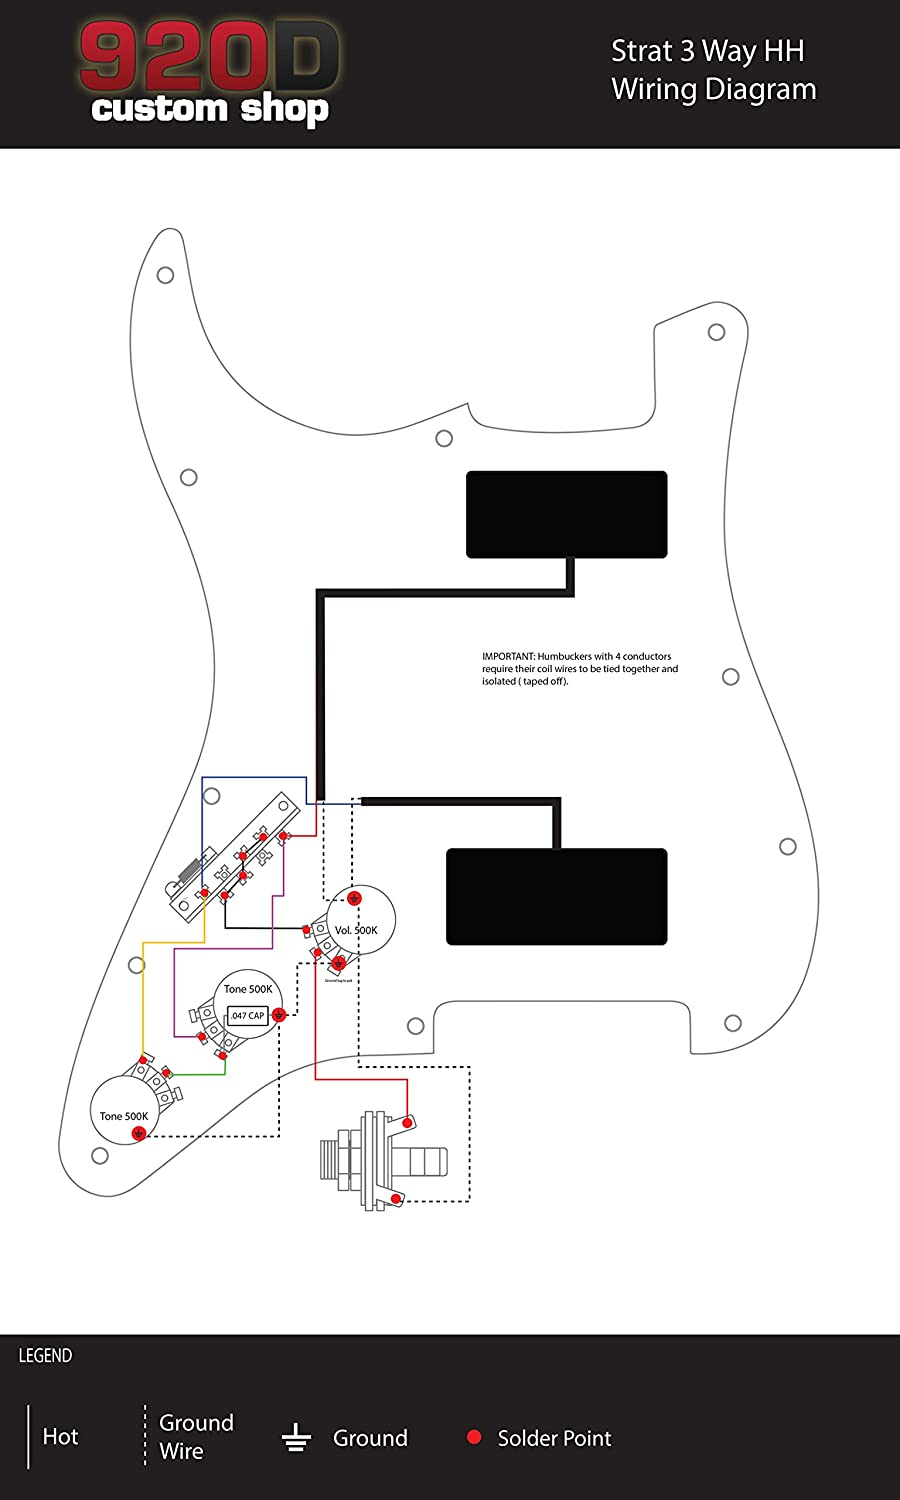 920d 3 Way Wiring Harness Fender Stratocaster Strat Hh Electric Guitar Diagram Split Shaft Cts 500k Musical Instruments